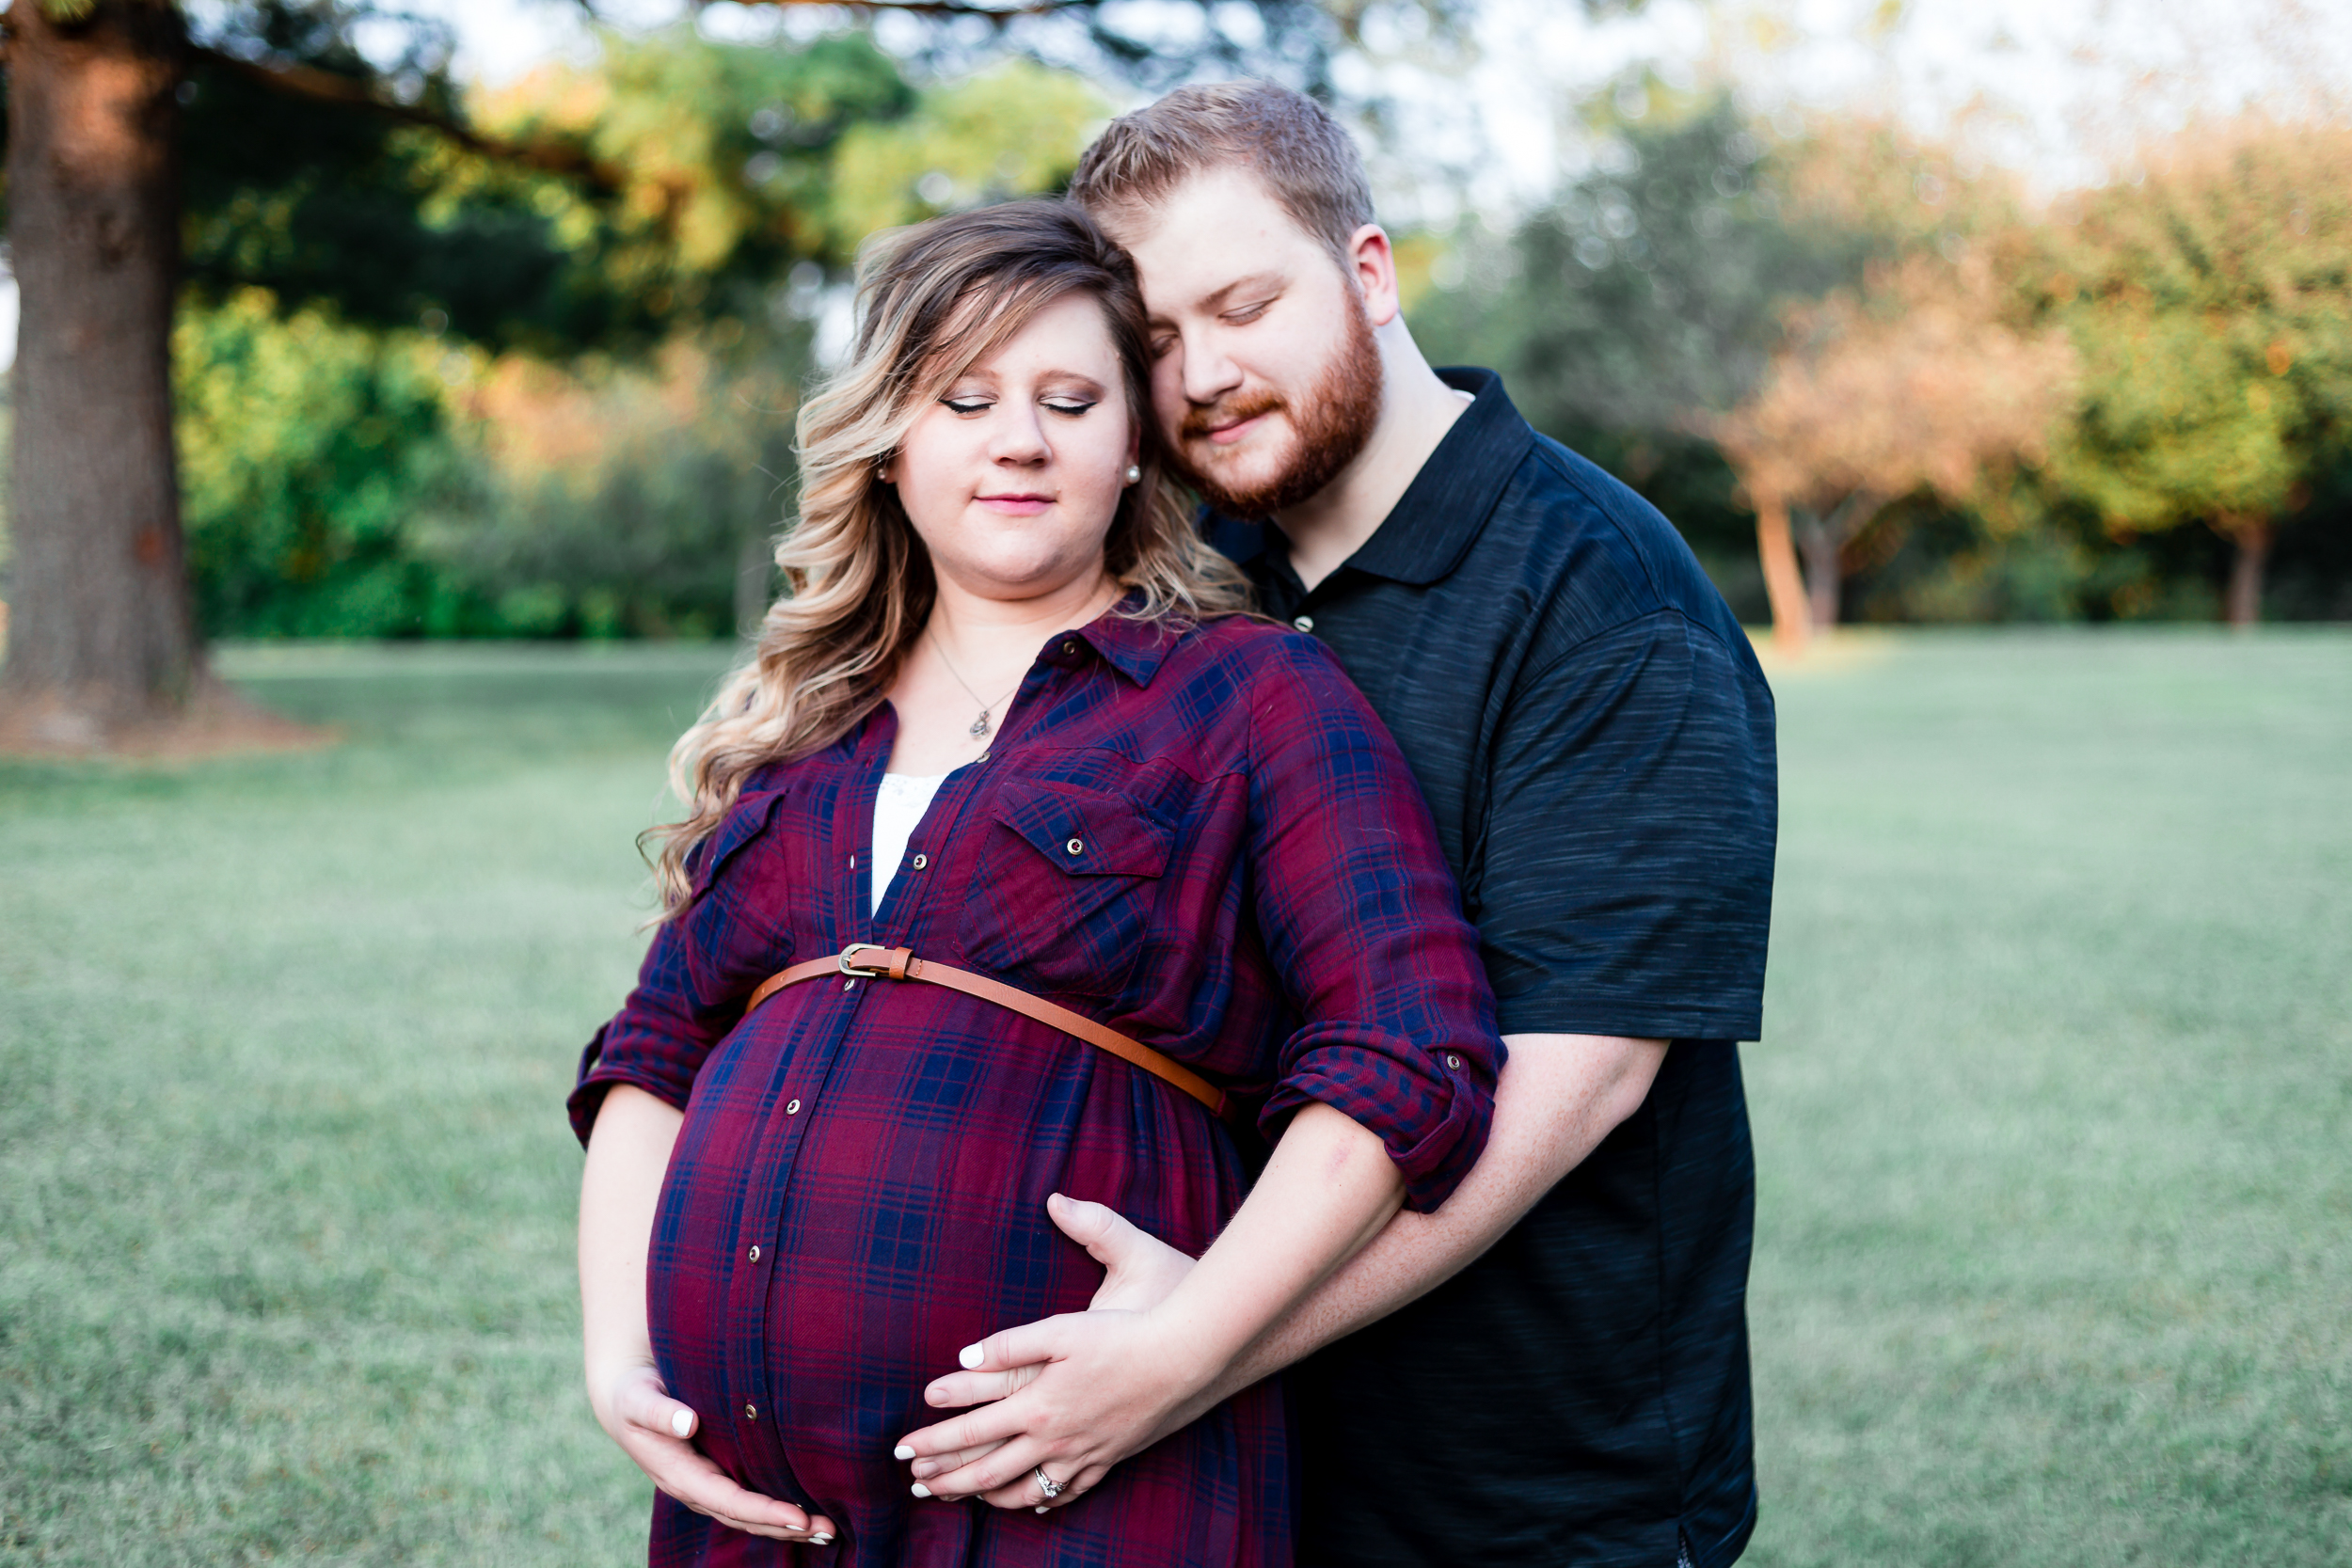 mmw-lynchburg-maternity-photo-session-08.jpg